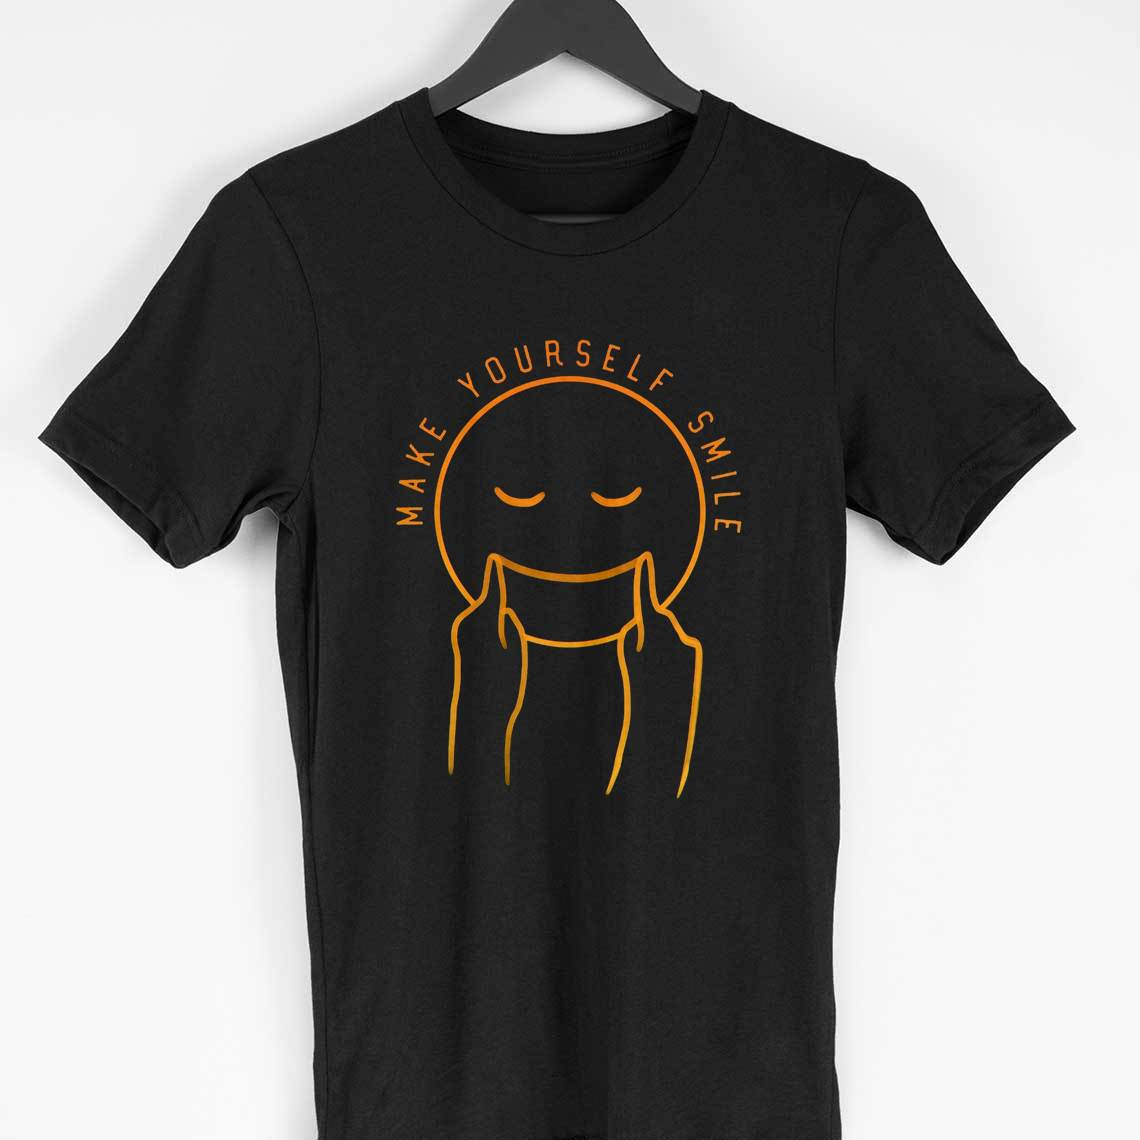 make yourself smile t-shirt